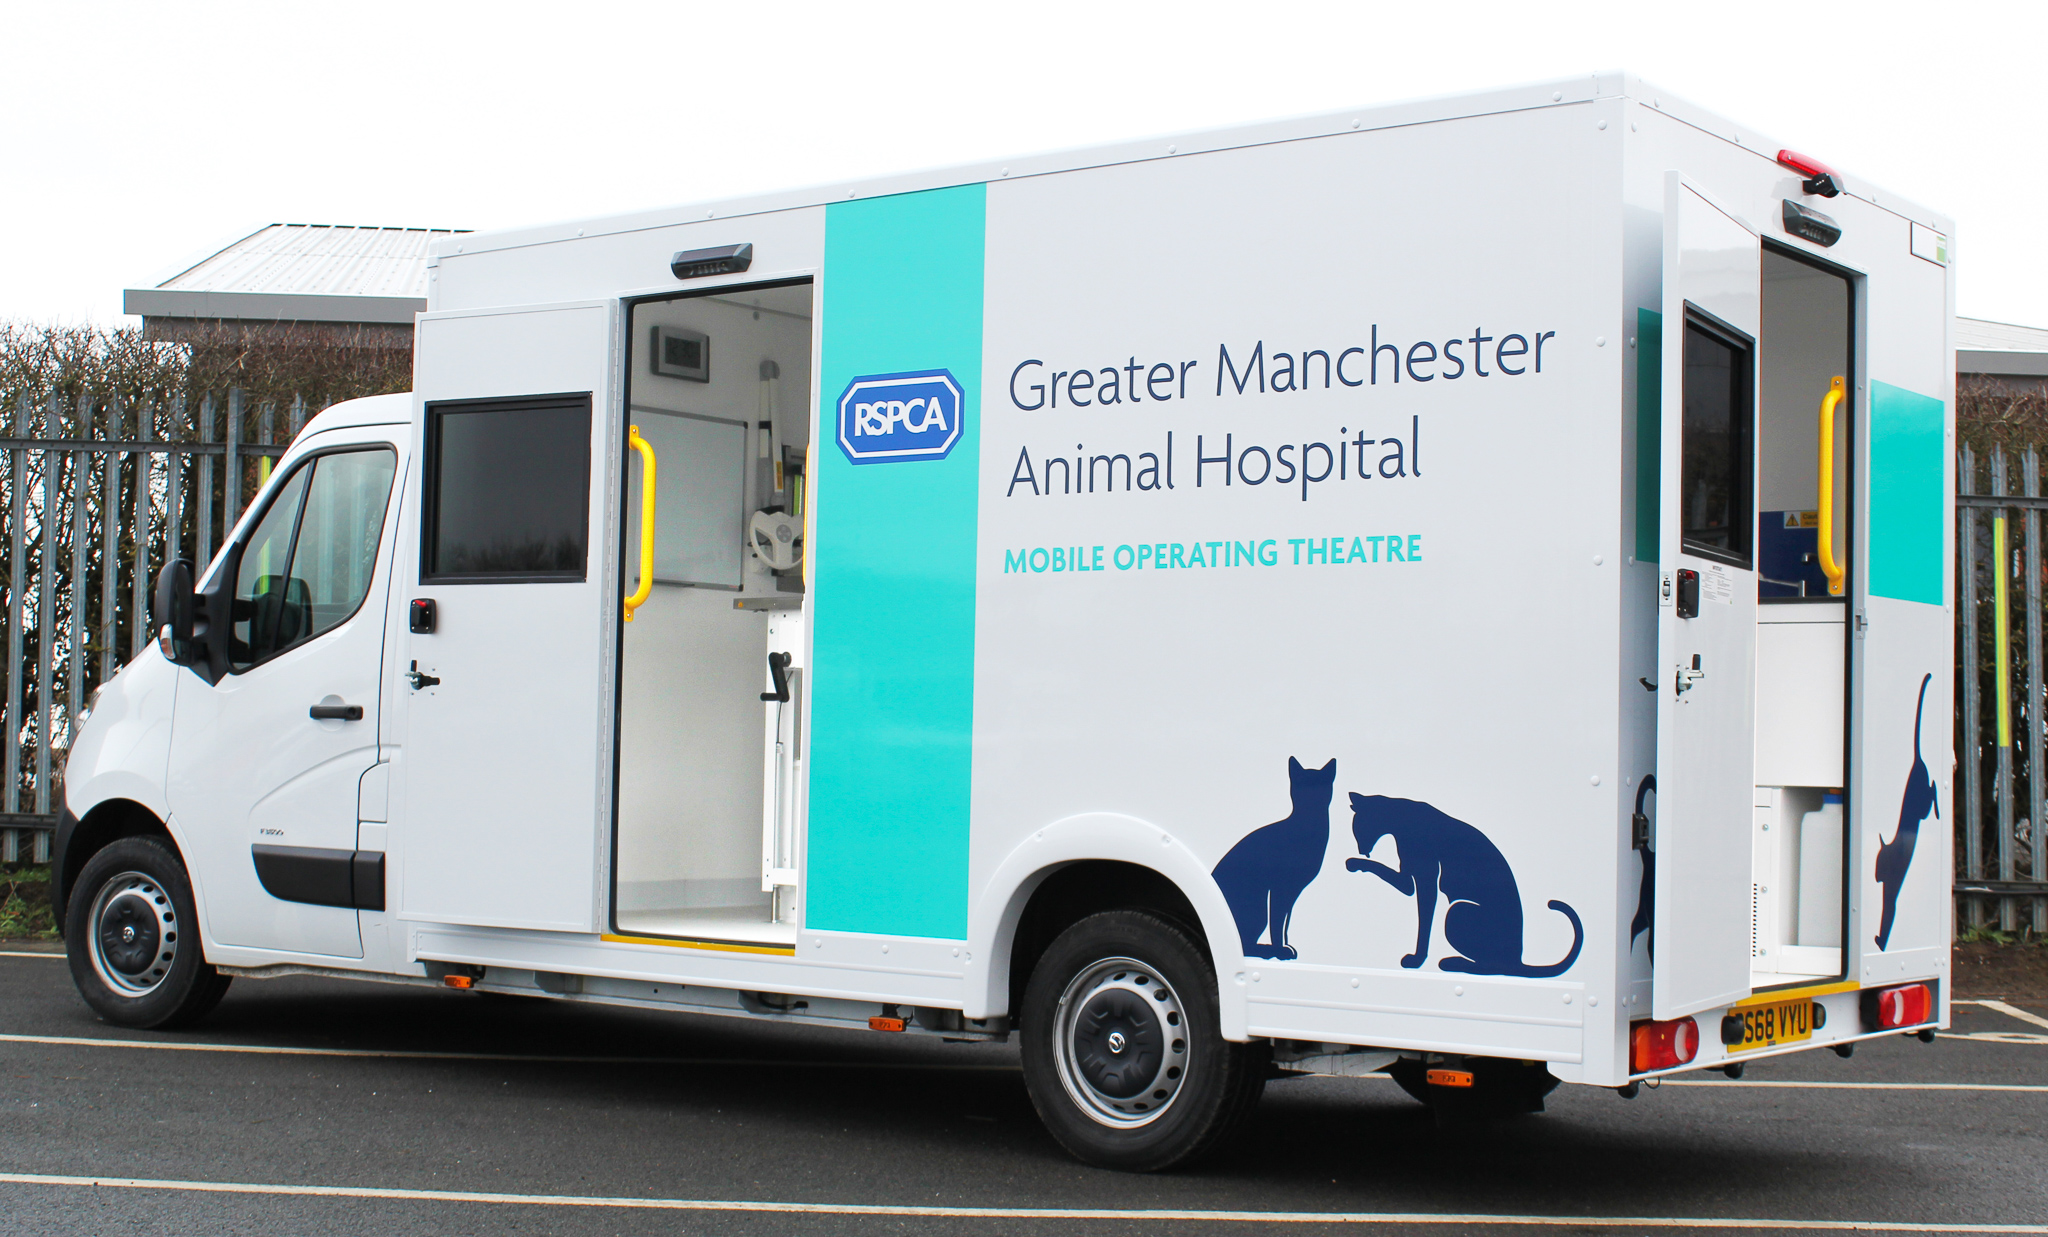 RSPCA_Mobile_Operating_Theatre